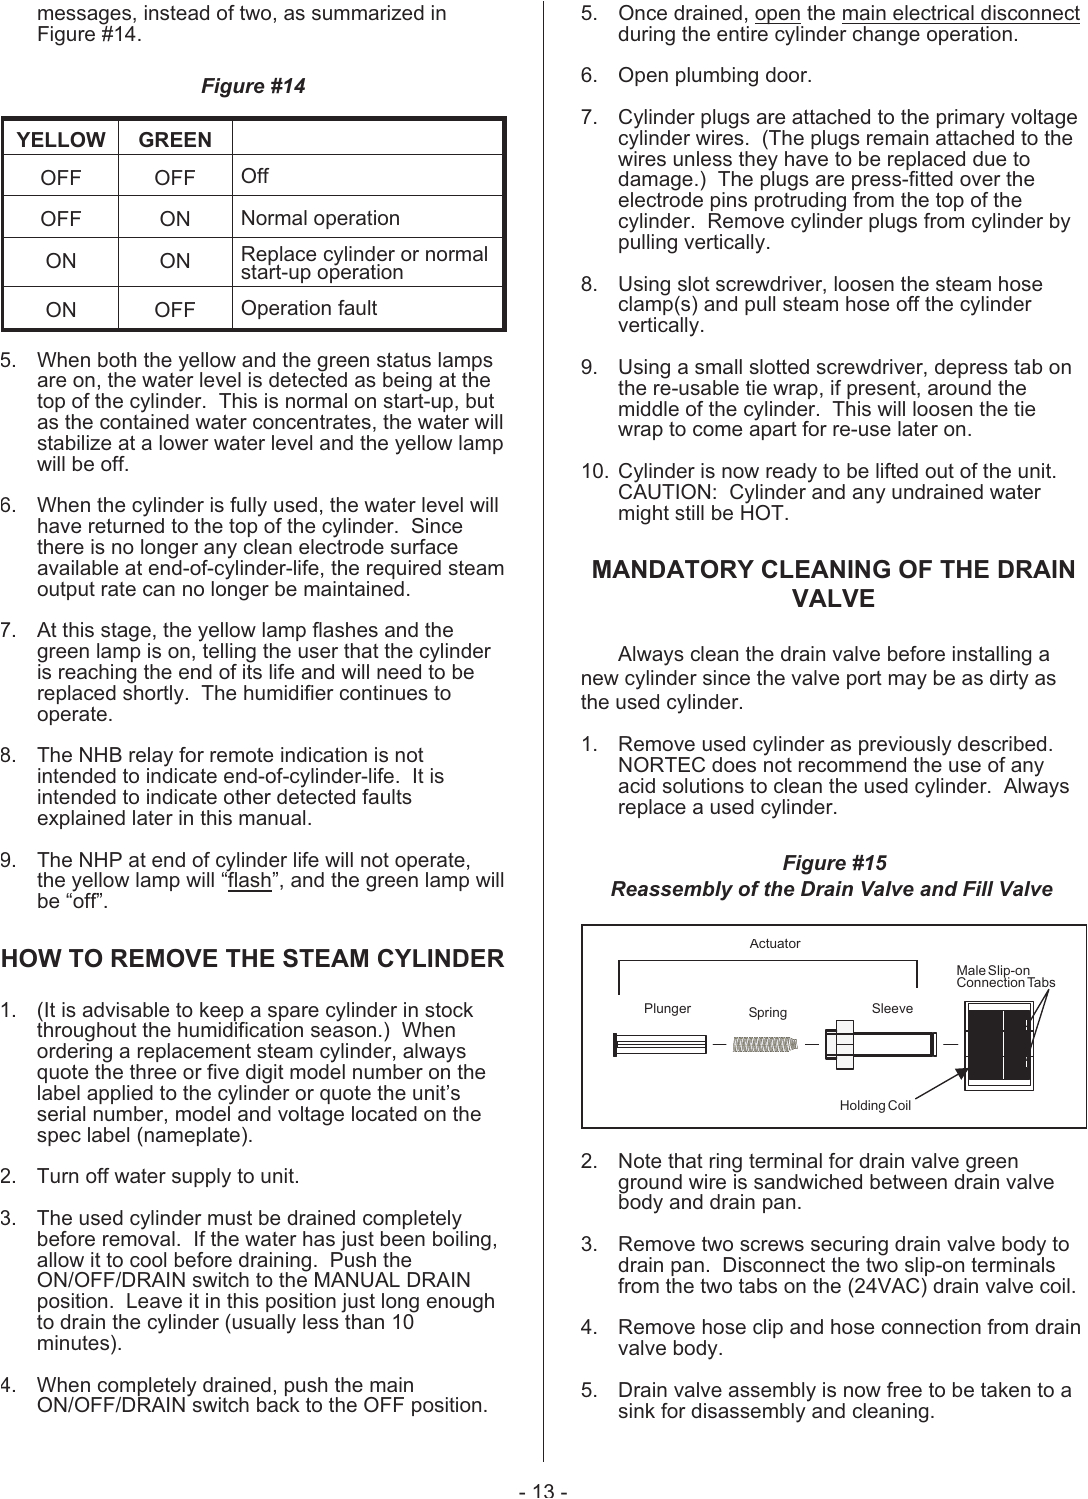 nortec1323091usersmanual495643 1243418948 user guide page 16 png